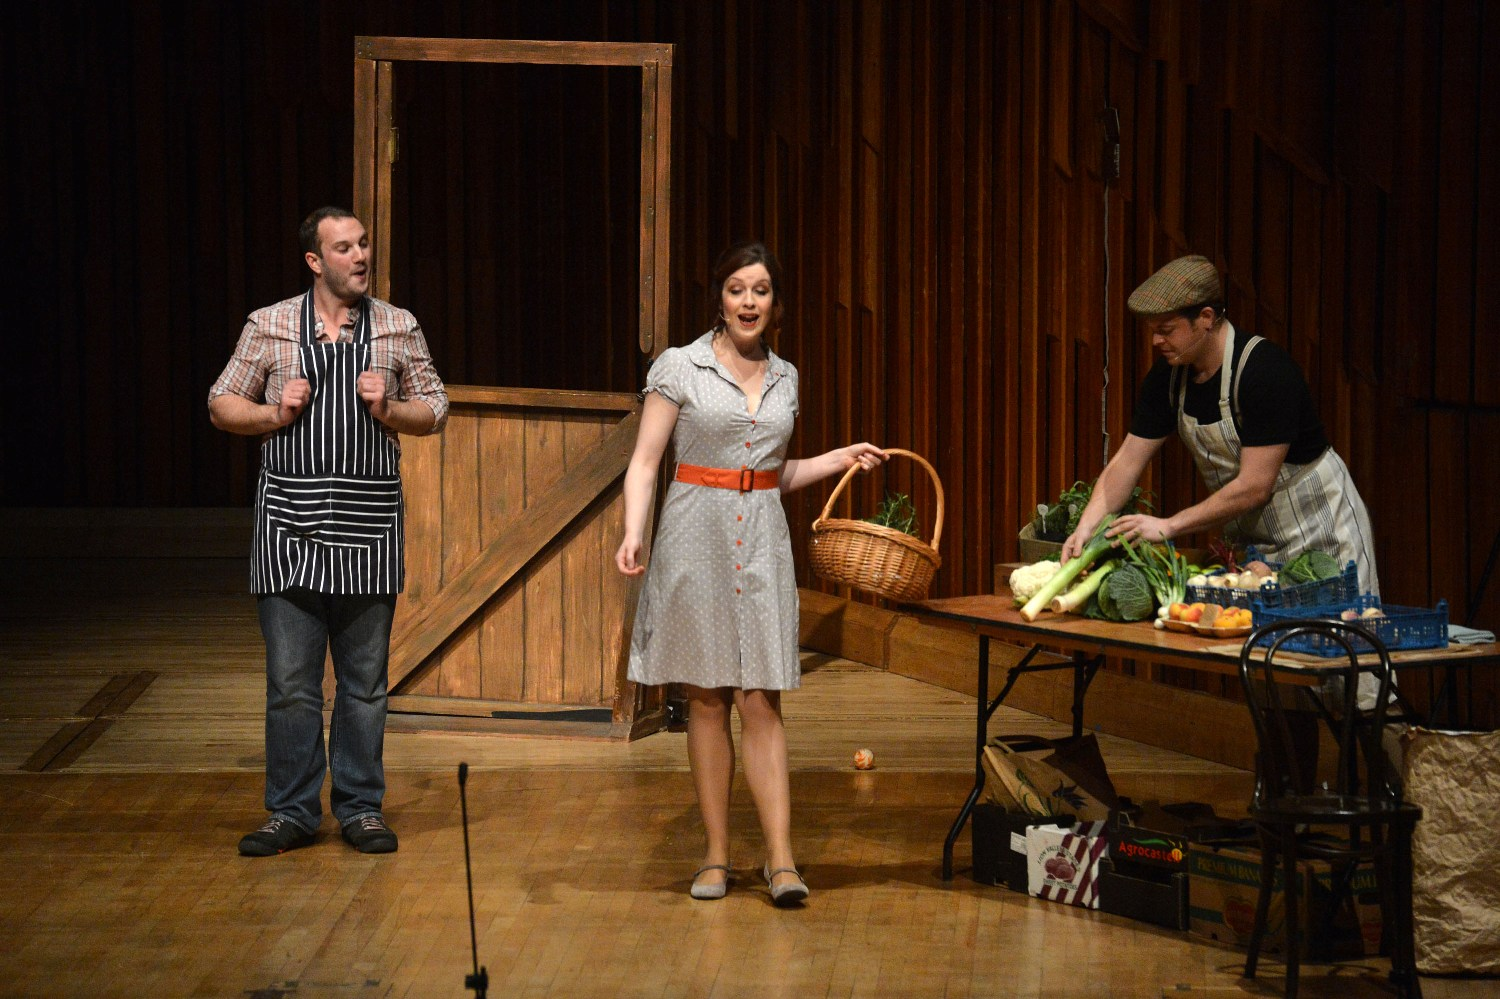 Marcus Farnsworth, Kitty Whately and Andrew Staples in the Barbican Albert Herring